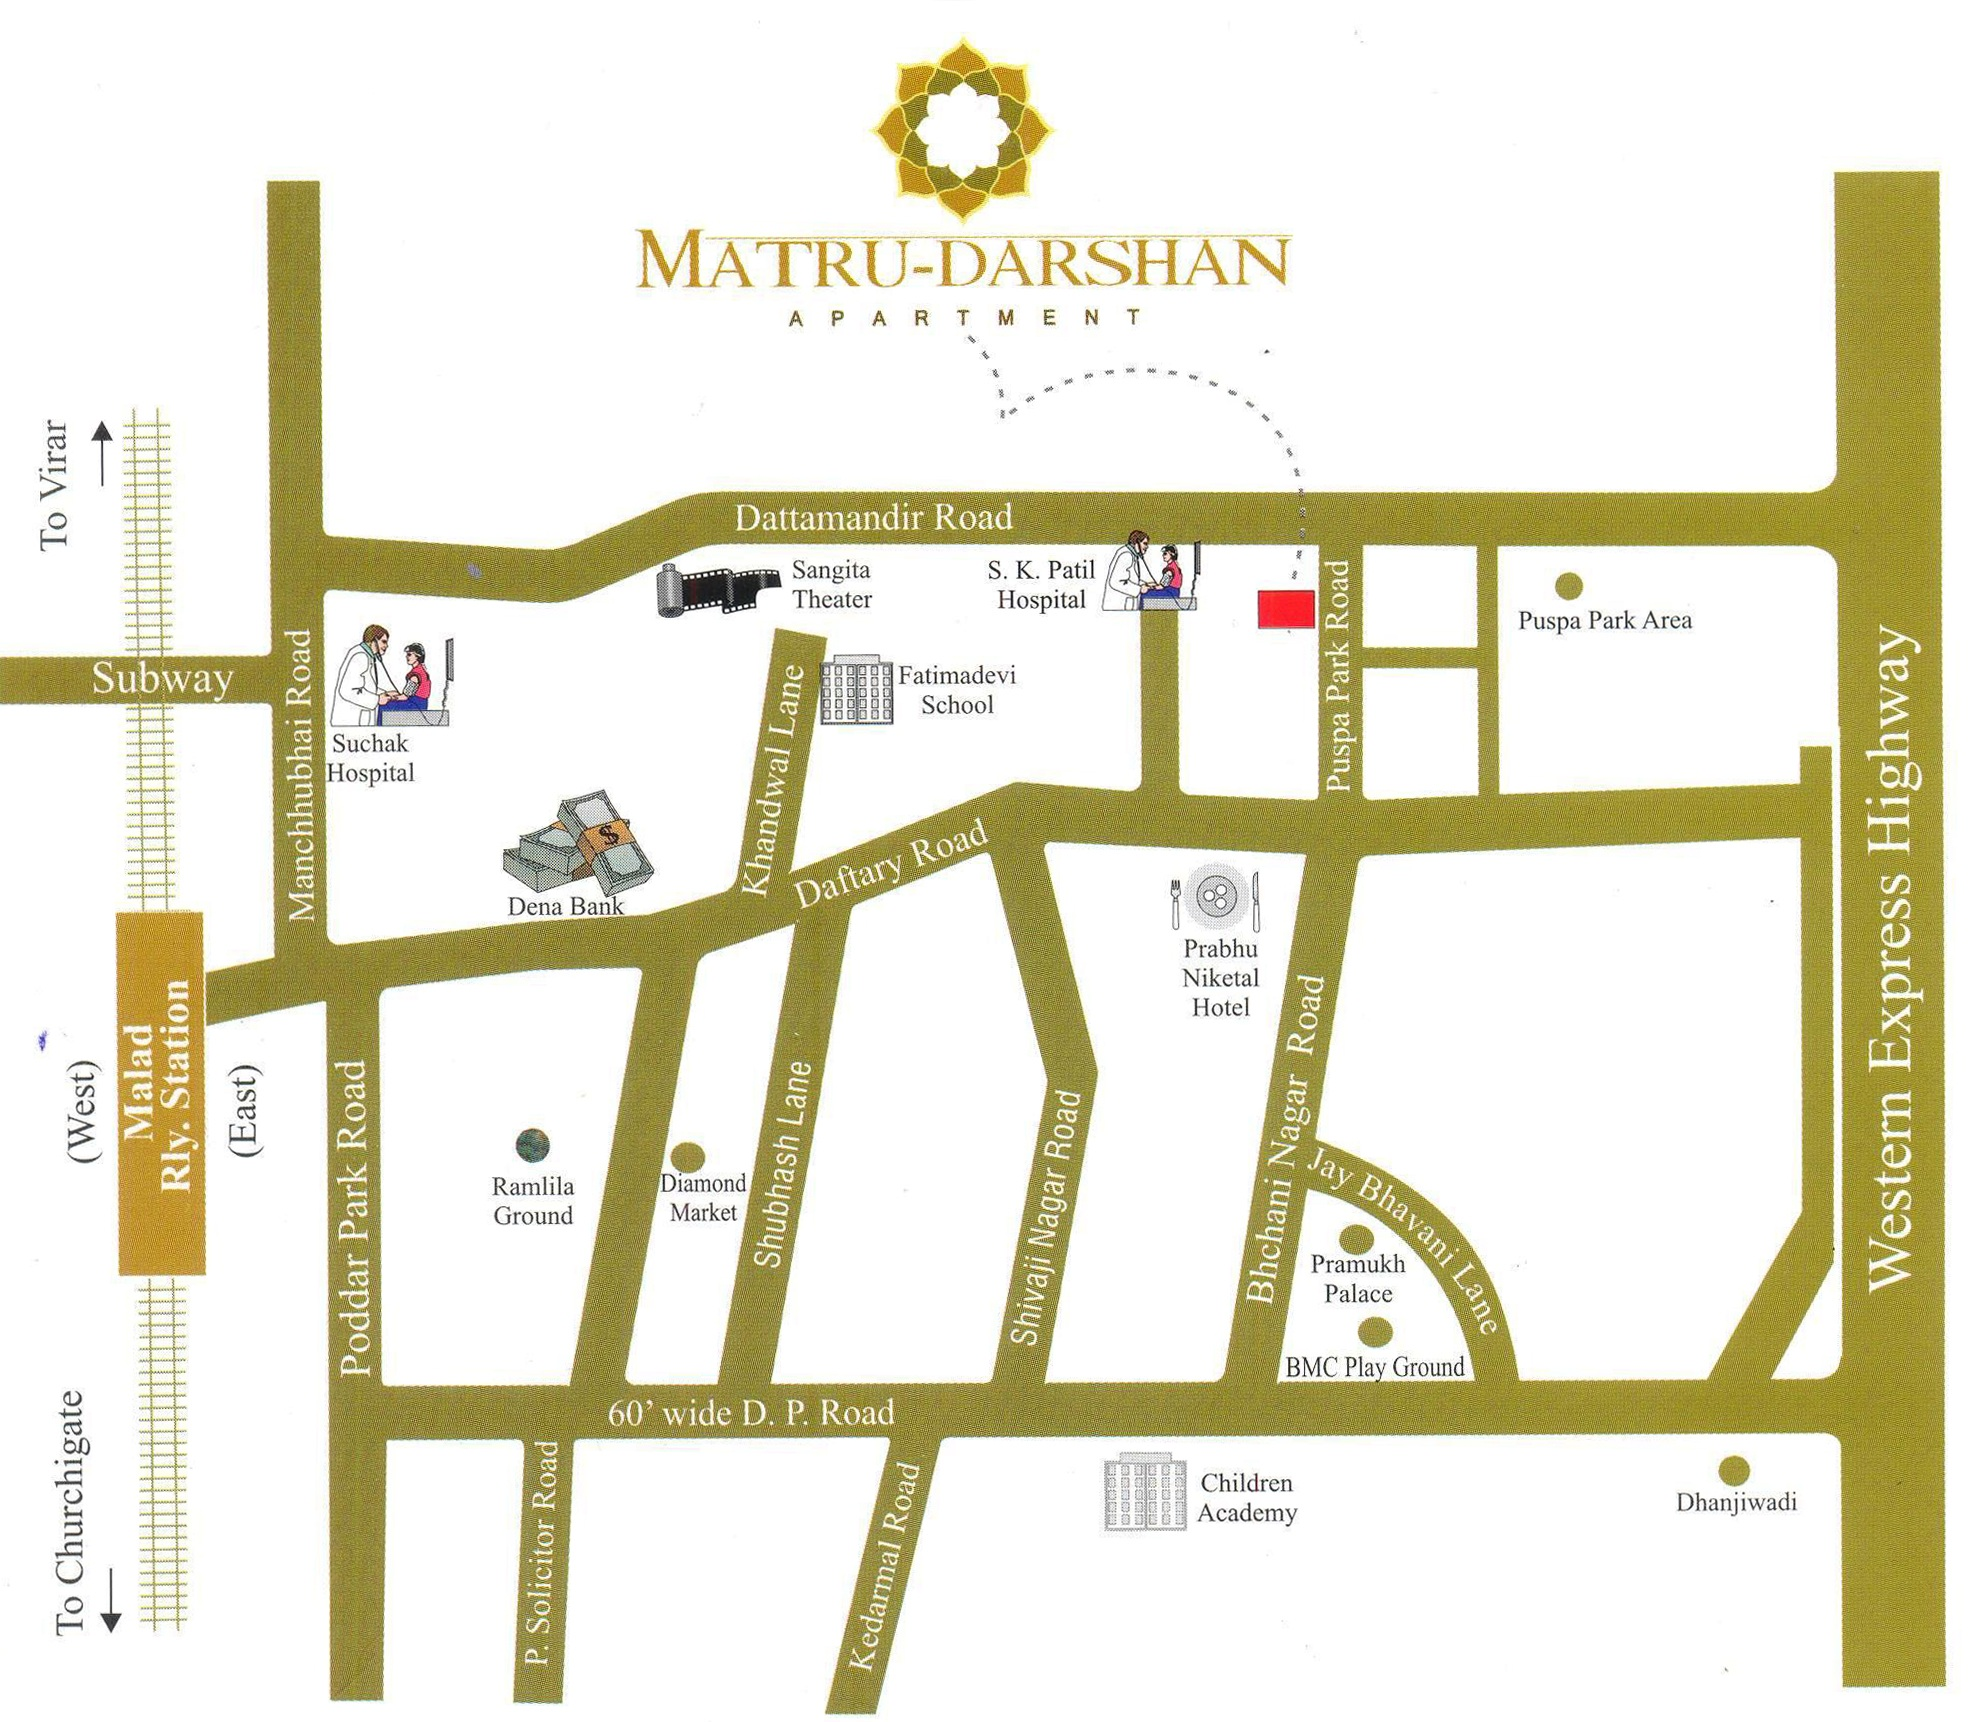 Royal Builder And Developers Royal Matru Darshan Map Royal Matru